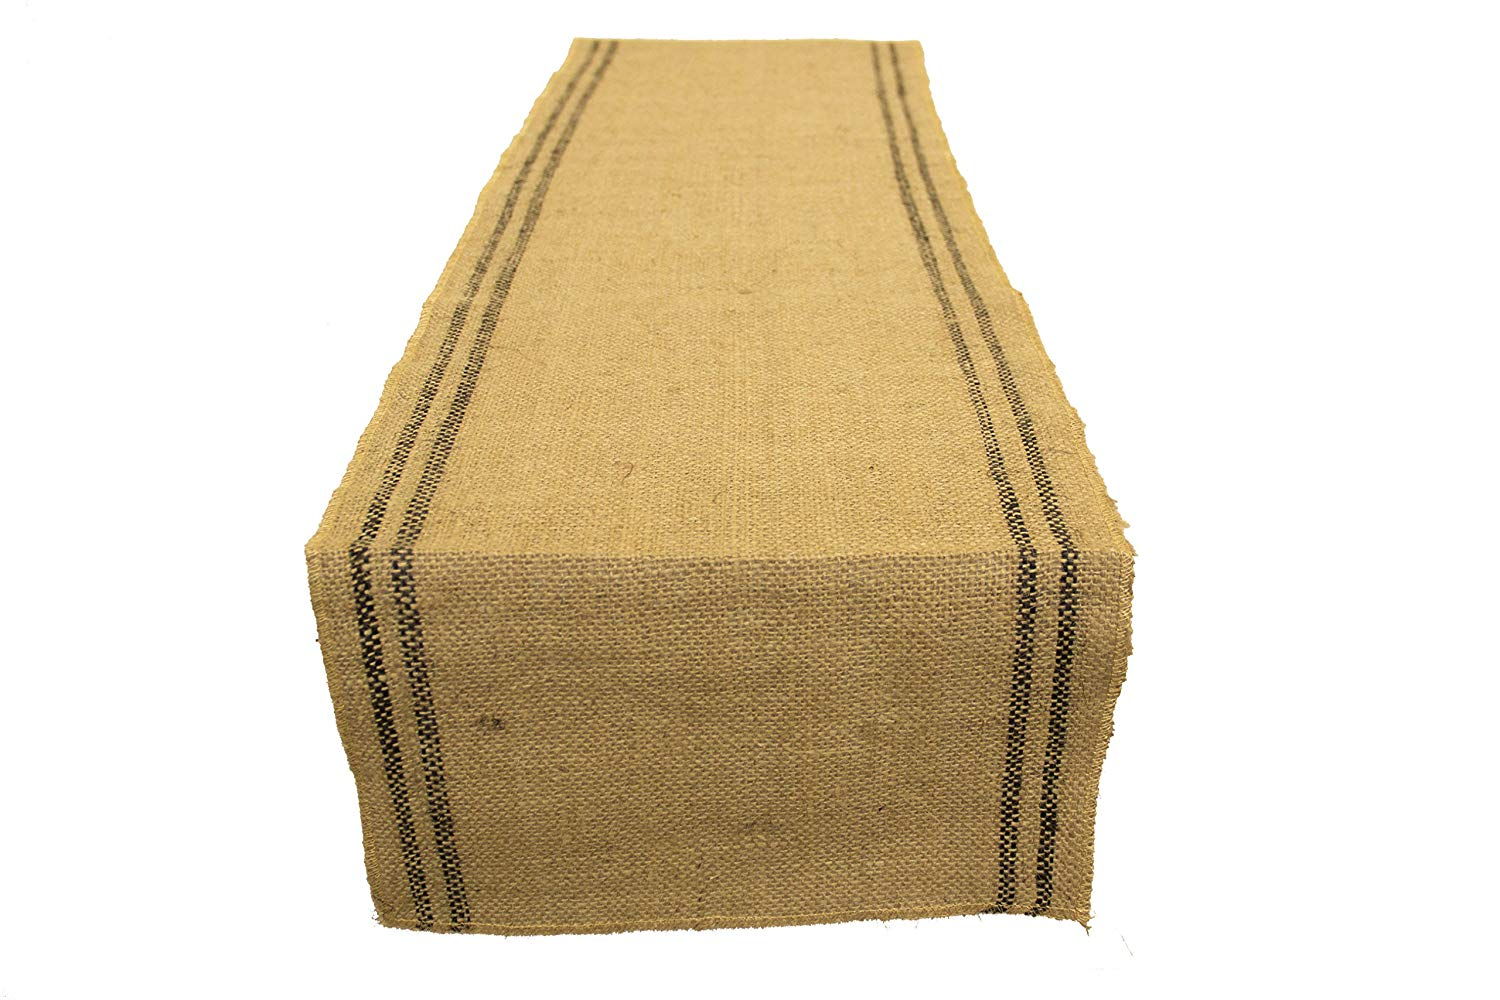 AAYU Brand Premium Jute Burlap Table Runners | Two Black Stripes Inlay | 12 inch x 10 Yards | No-Fray | Food Grade Burlap | Eco-Friendly Natural Product | 360 inches Long Runner